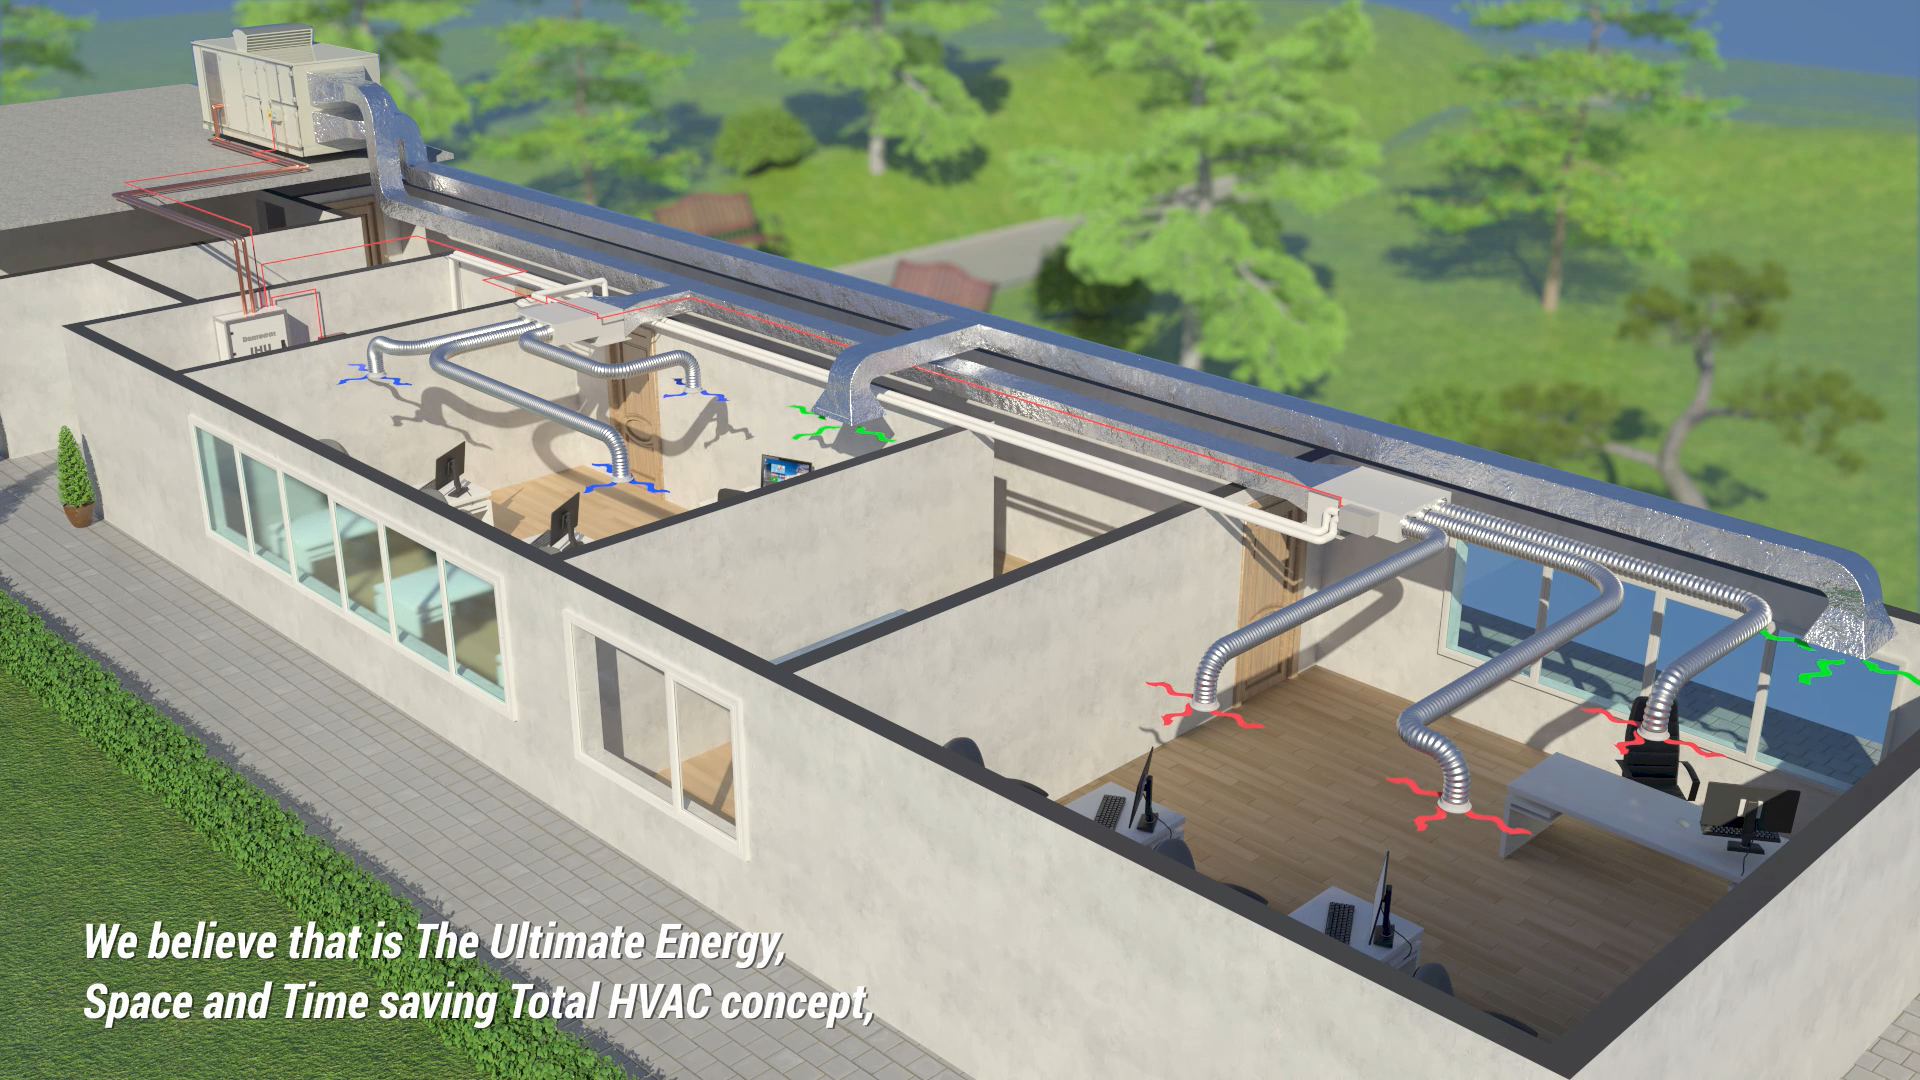 tHVAC (total Heating, Ventilation and Air-Conditioning)